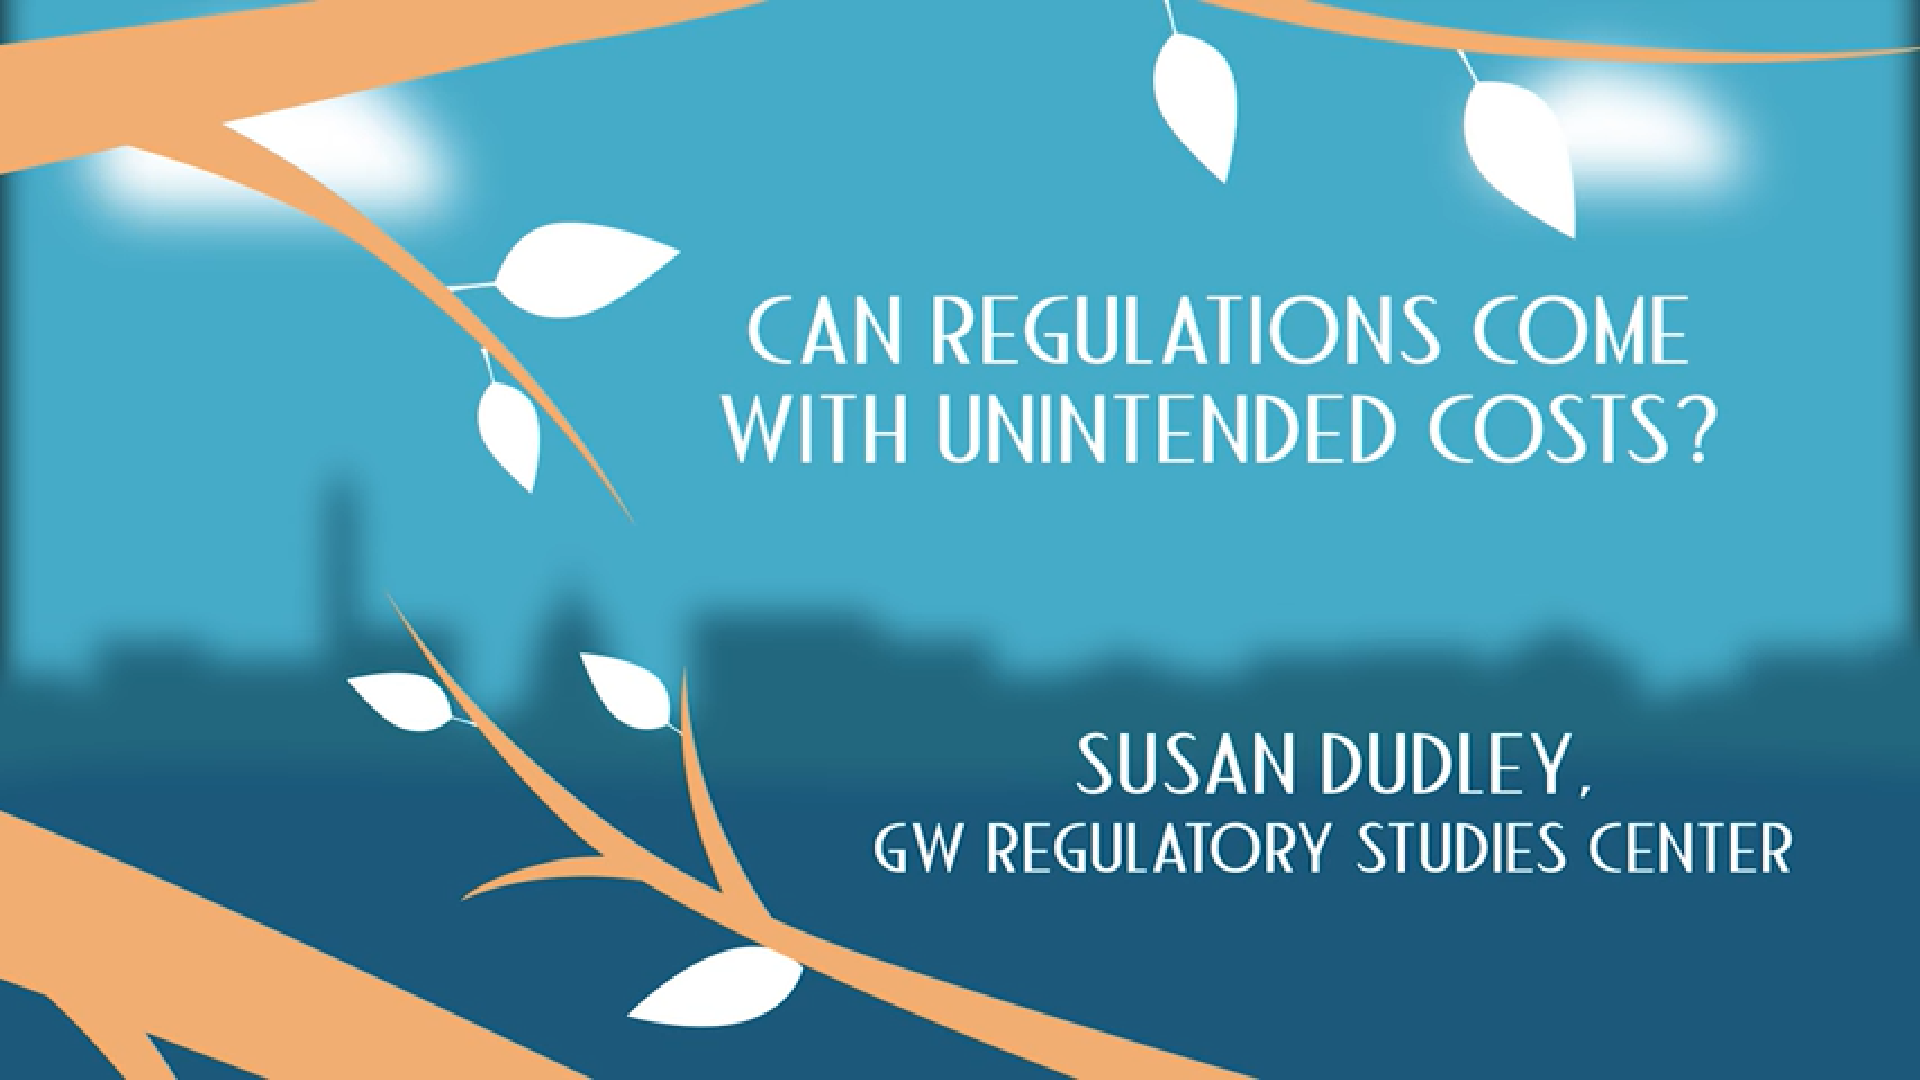 Can Regulations Come with Unintended Costs?